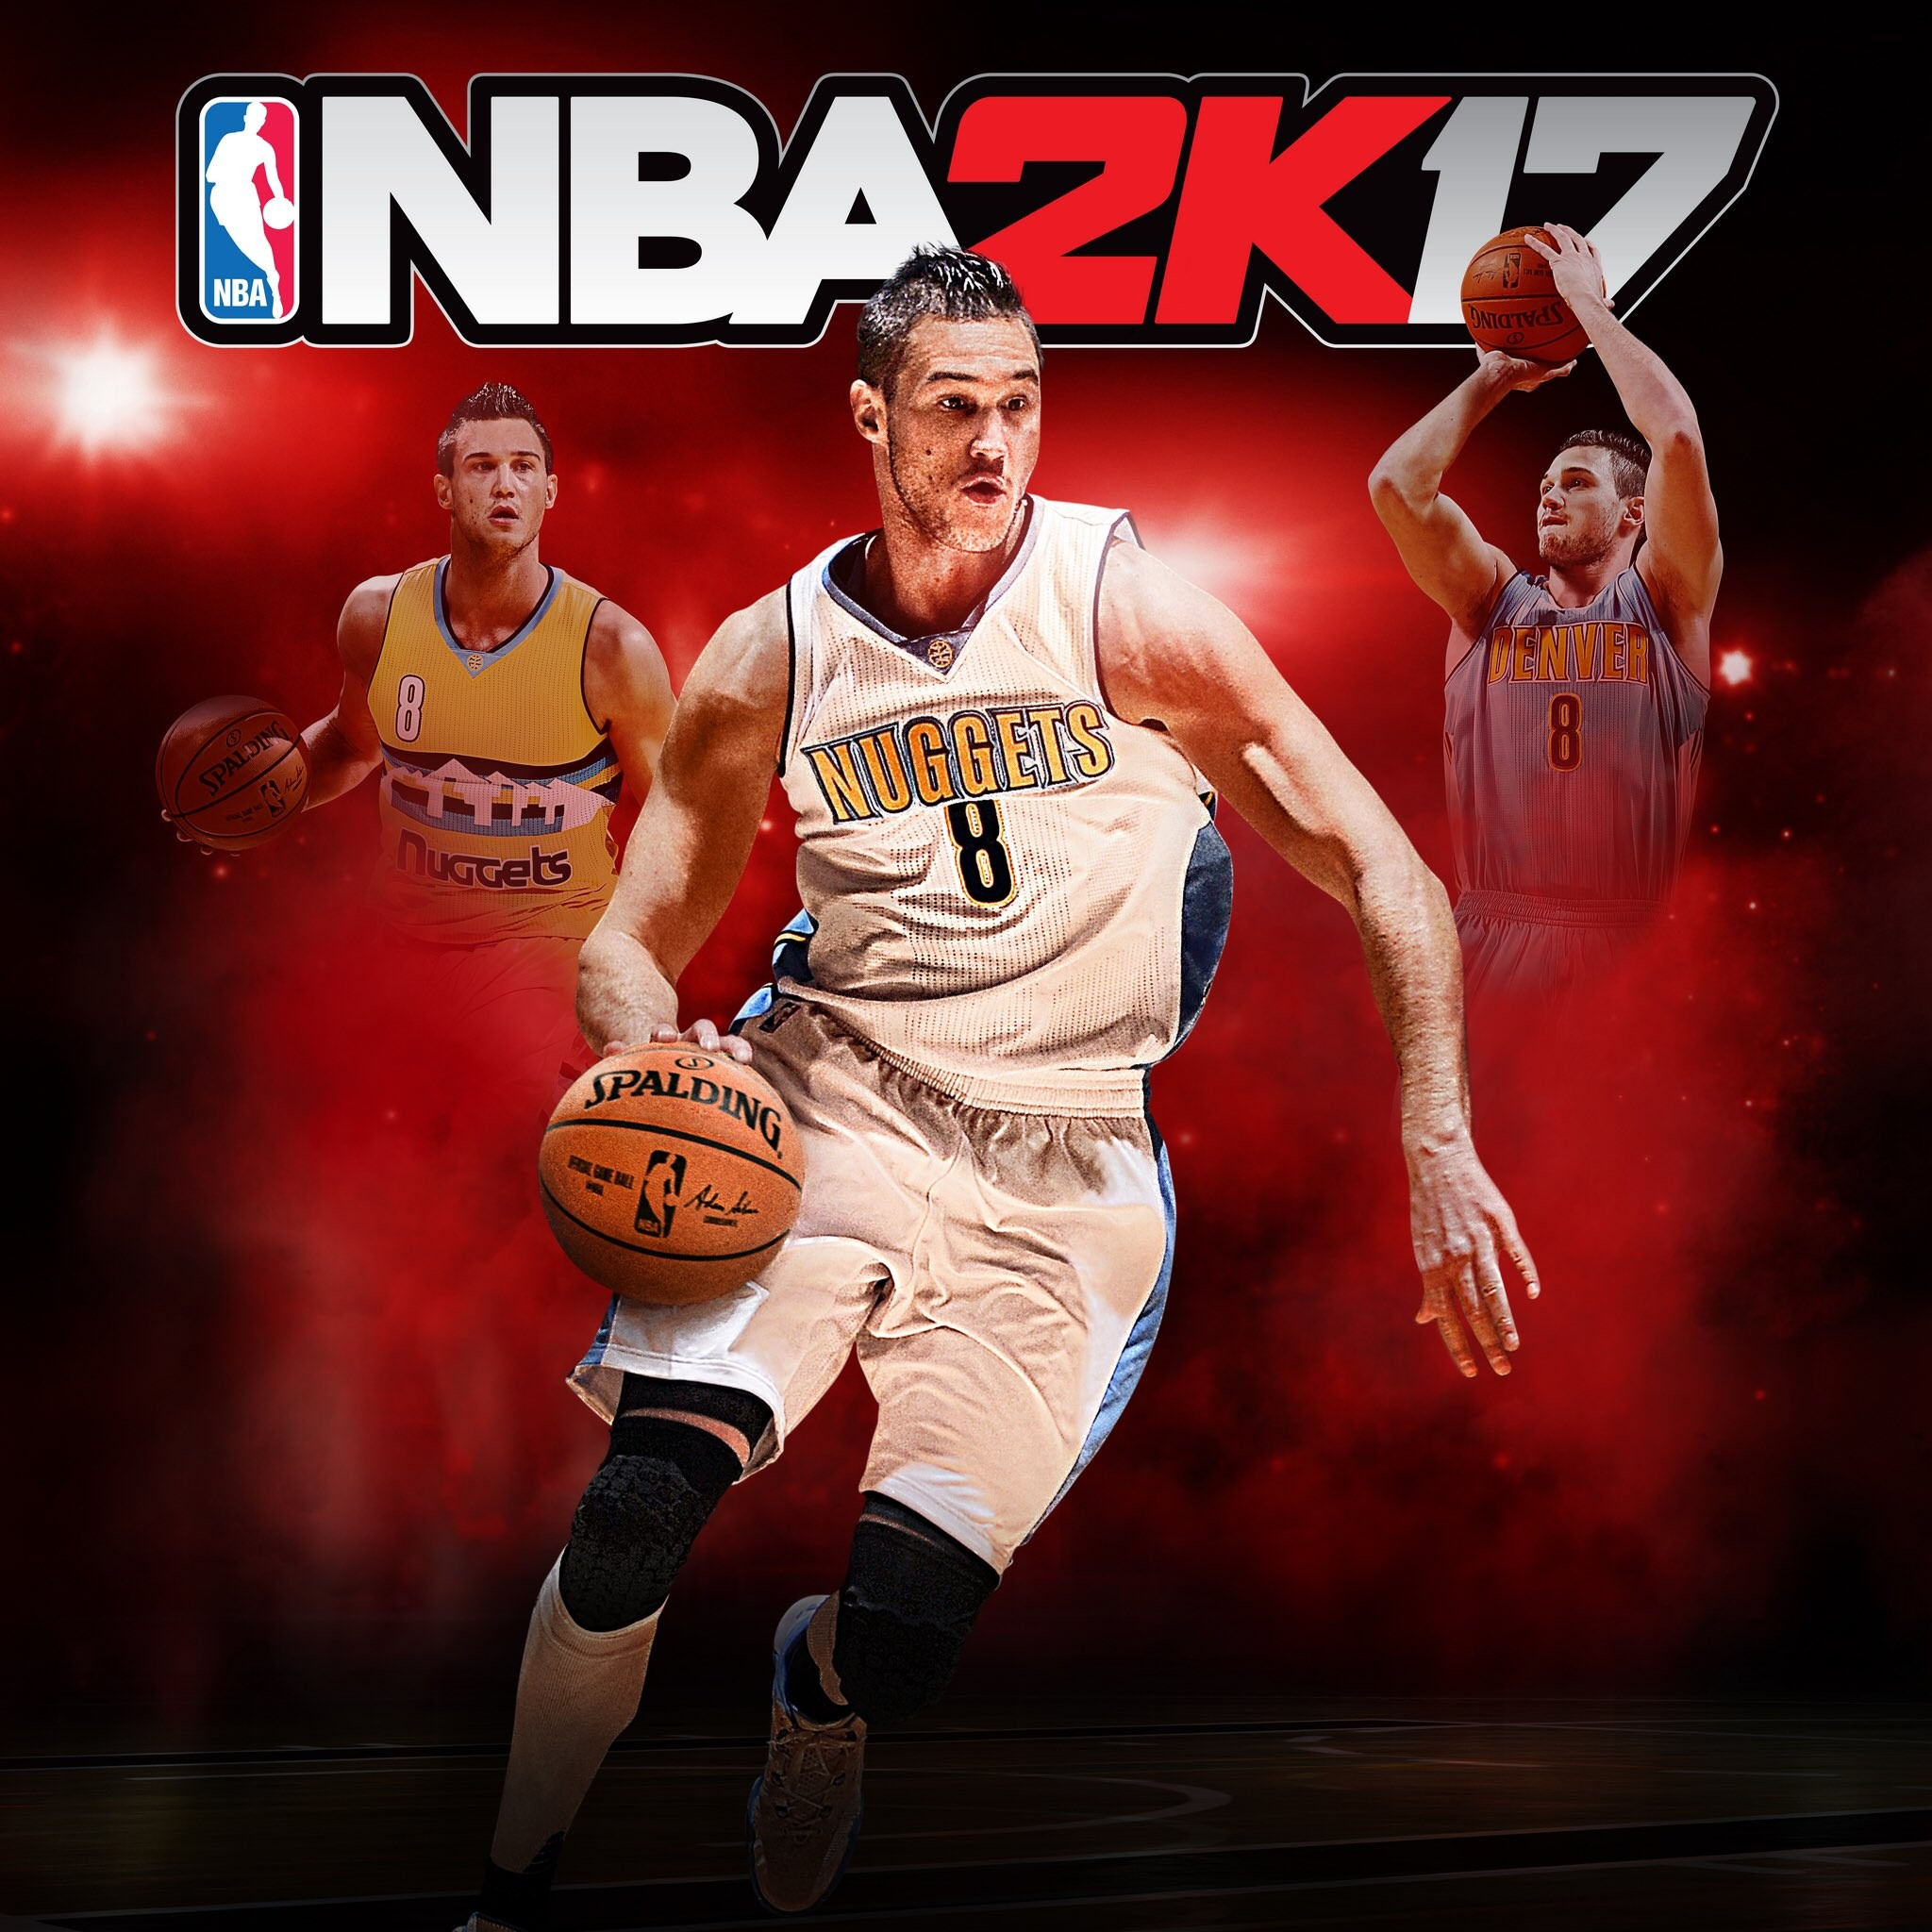 Image result for nba 2k17 cover